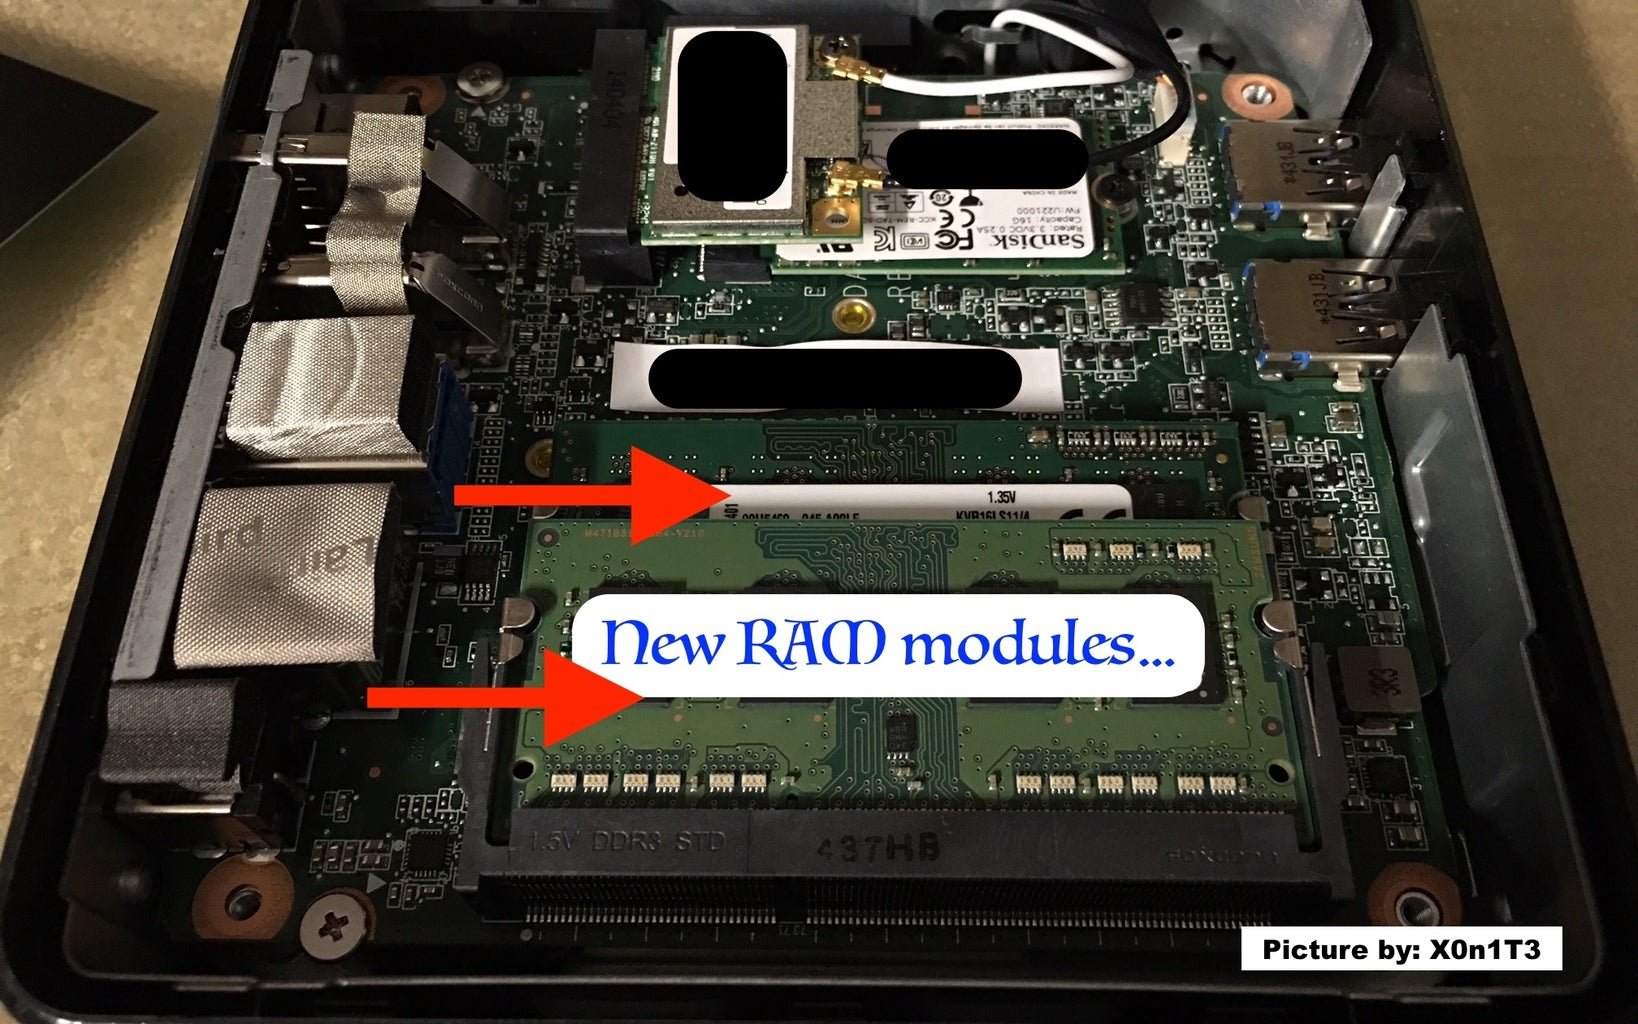 Replace the RAM...